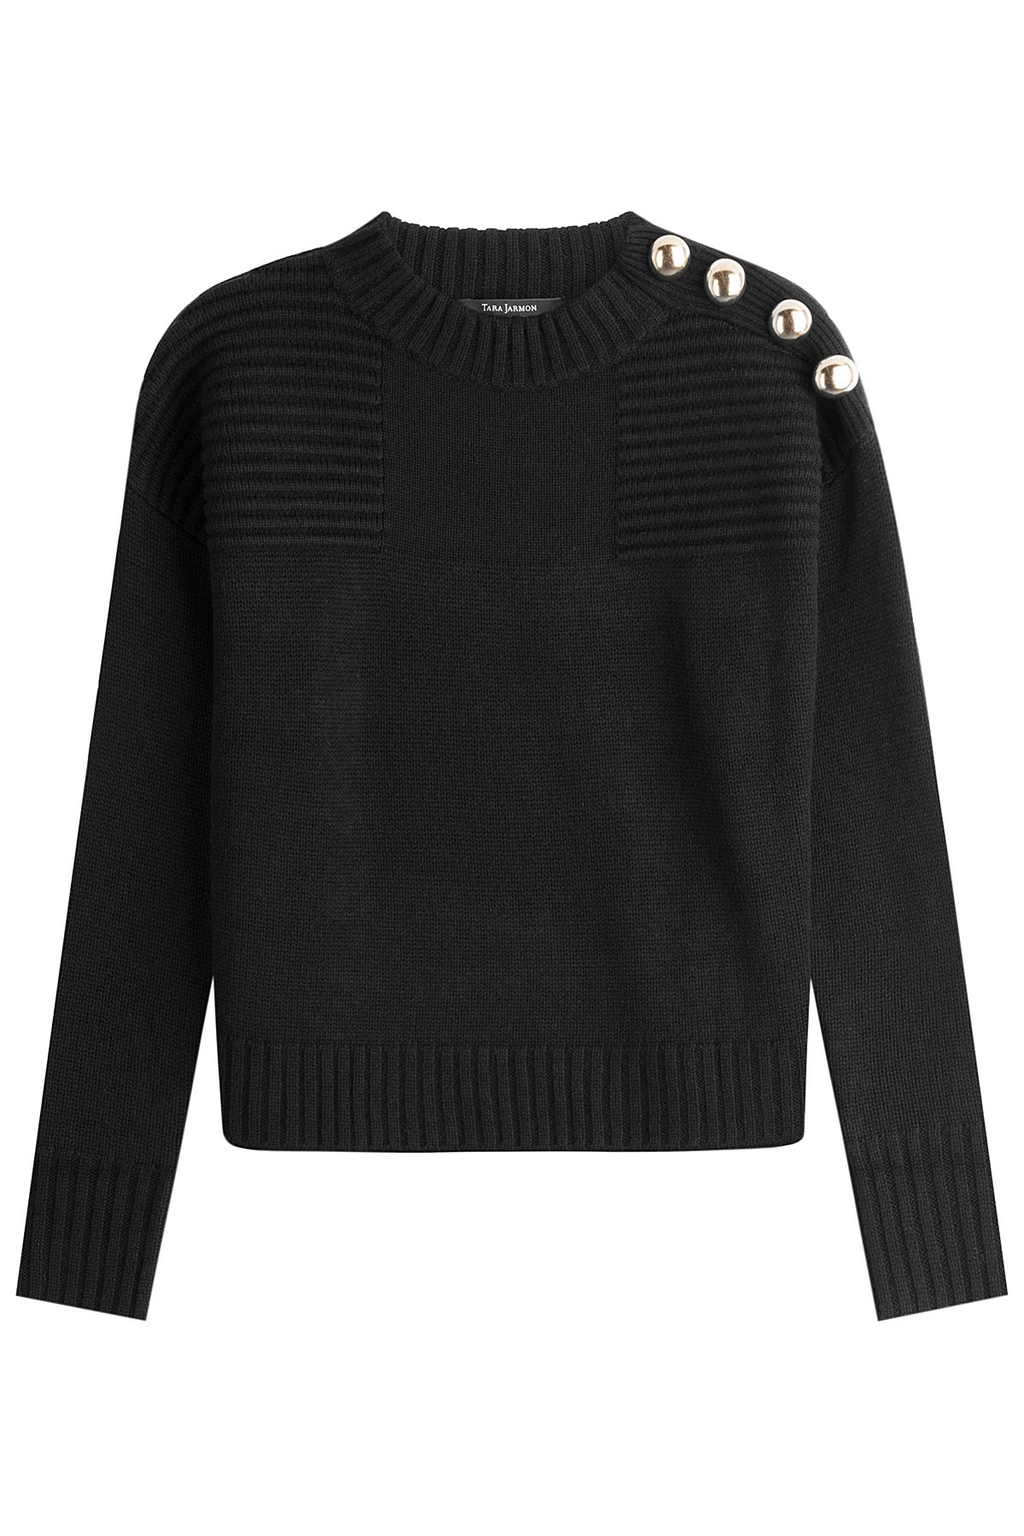 Wool Pullover With Metal Buttons - pattern: plain; style: standard; predominant colour: black; occasions: casual; length: standard; fibres: wool - 100%; fit: standard fit; neckline: crew; sleeve length: long sleeve; sleeve style: standard; texture group: knits/crochet; pattern type: knitted - fine stitch; season: s/s 2016; wardrobe: basic